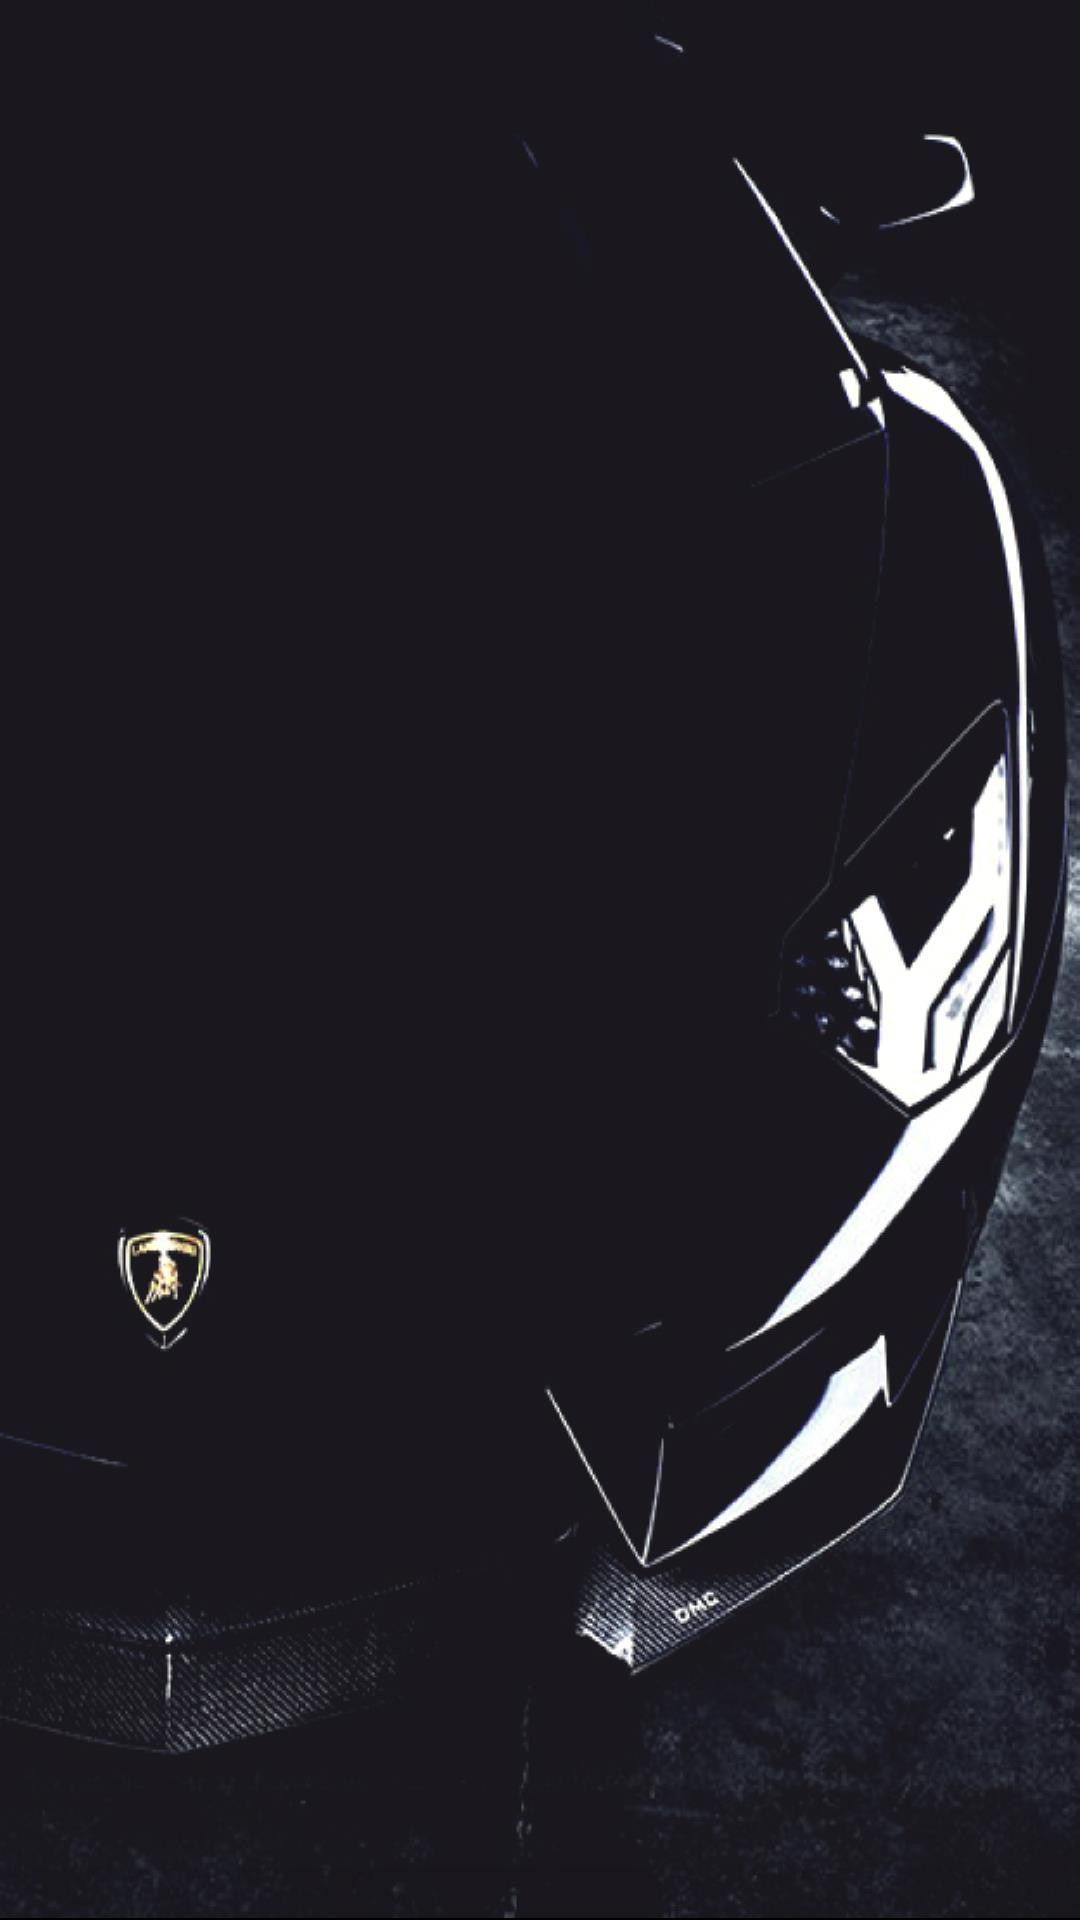 Dark Supercar Wallpaper Mobile In 2020 Hd Wallpapers For Mobile Mobile Wallpaper Black Phone Wallpaper